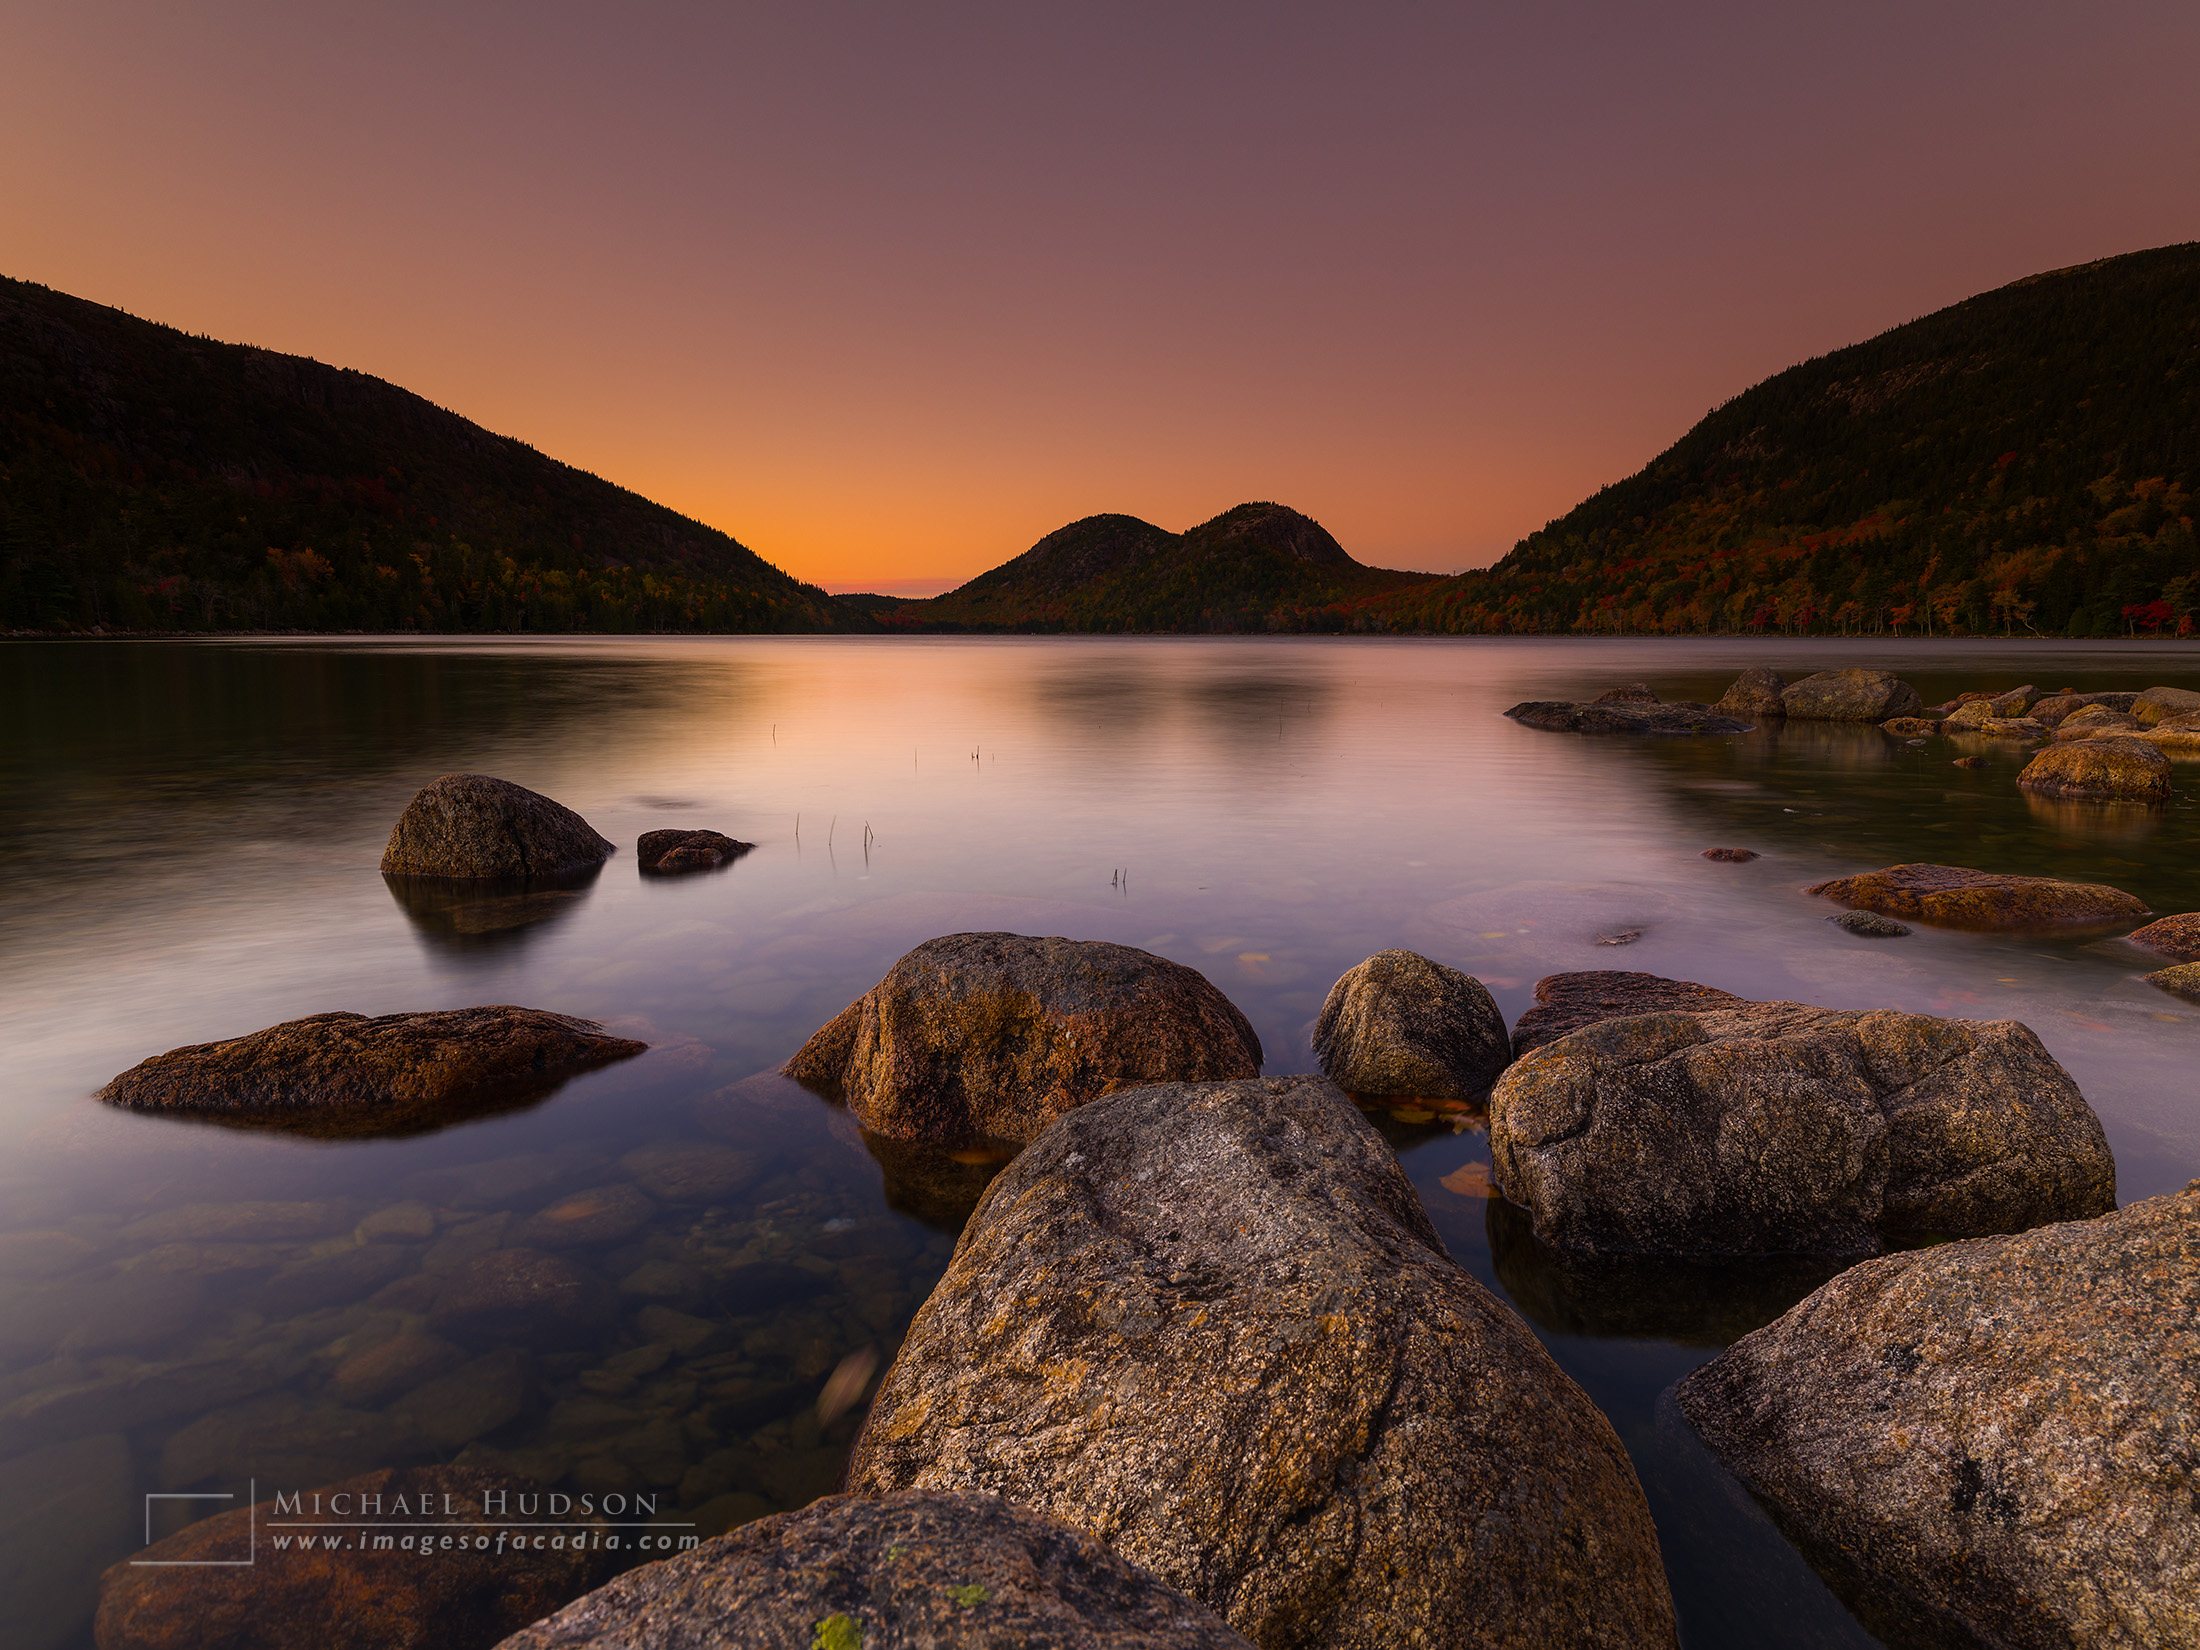 Sunset at Jordan Pond, Acadia, October 2018